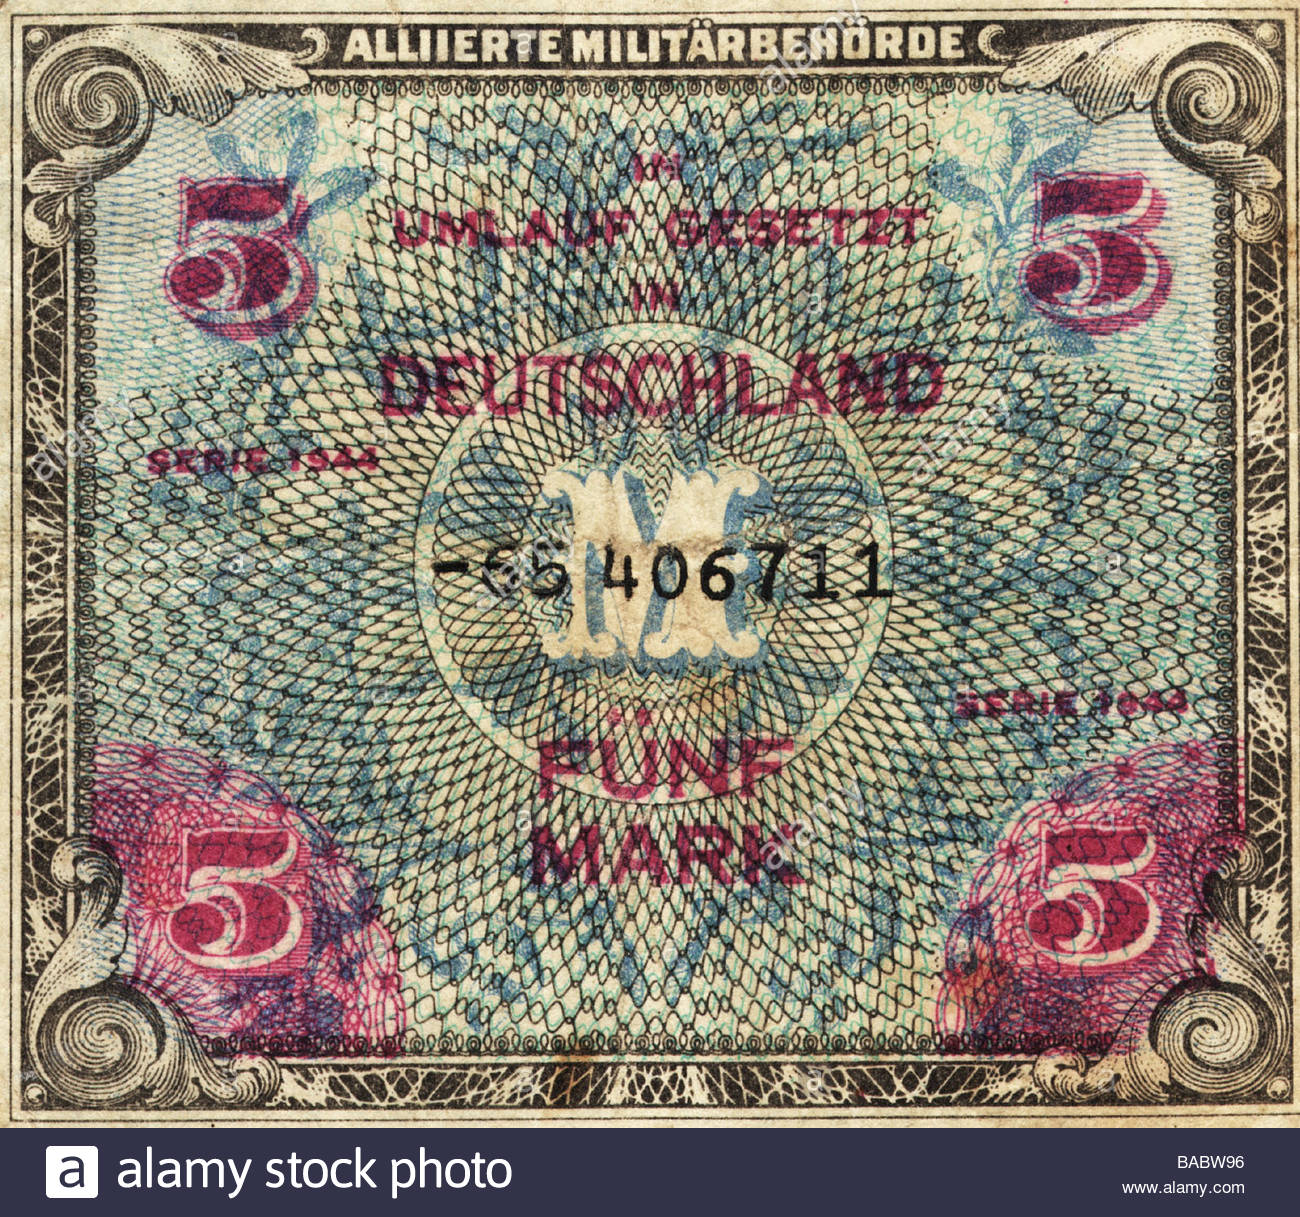 money-finance-banknotes-germany-5-reichsmark-bill-of-the-allied-military-BABW96